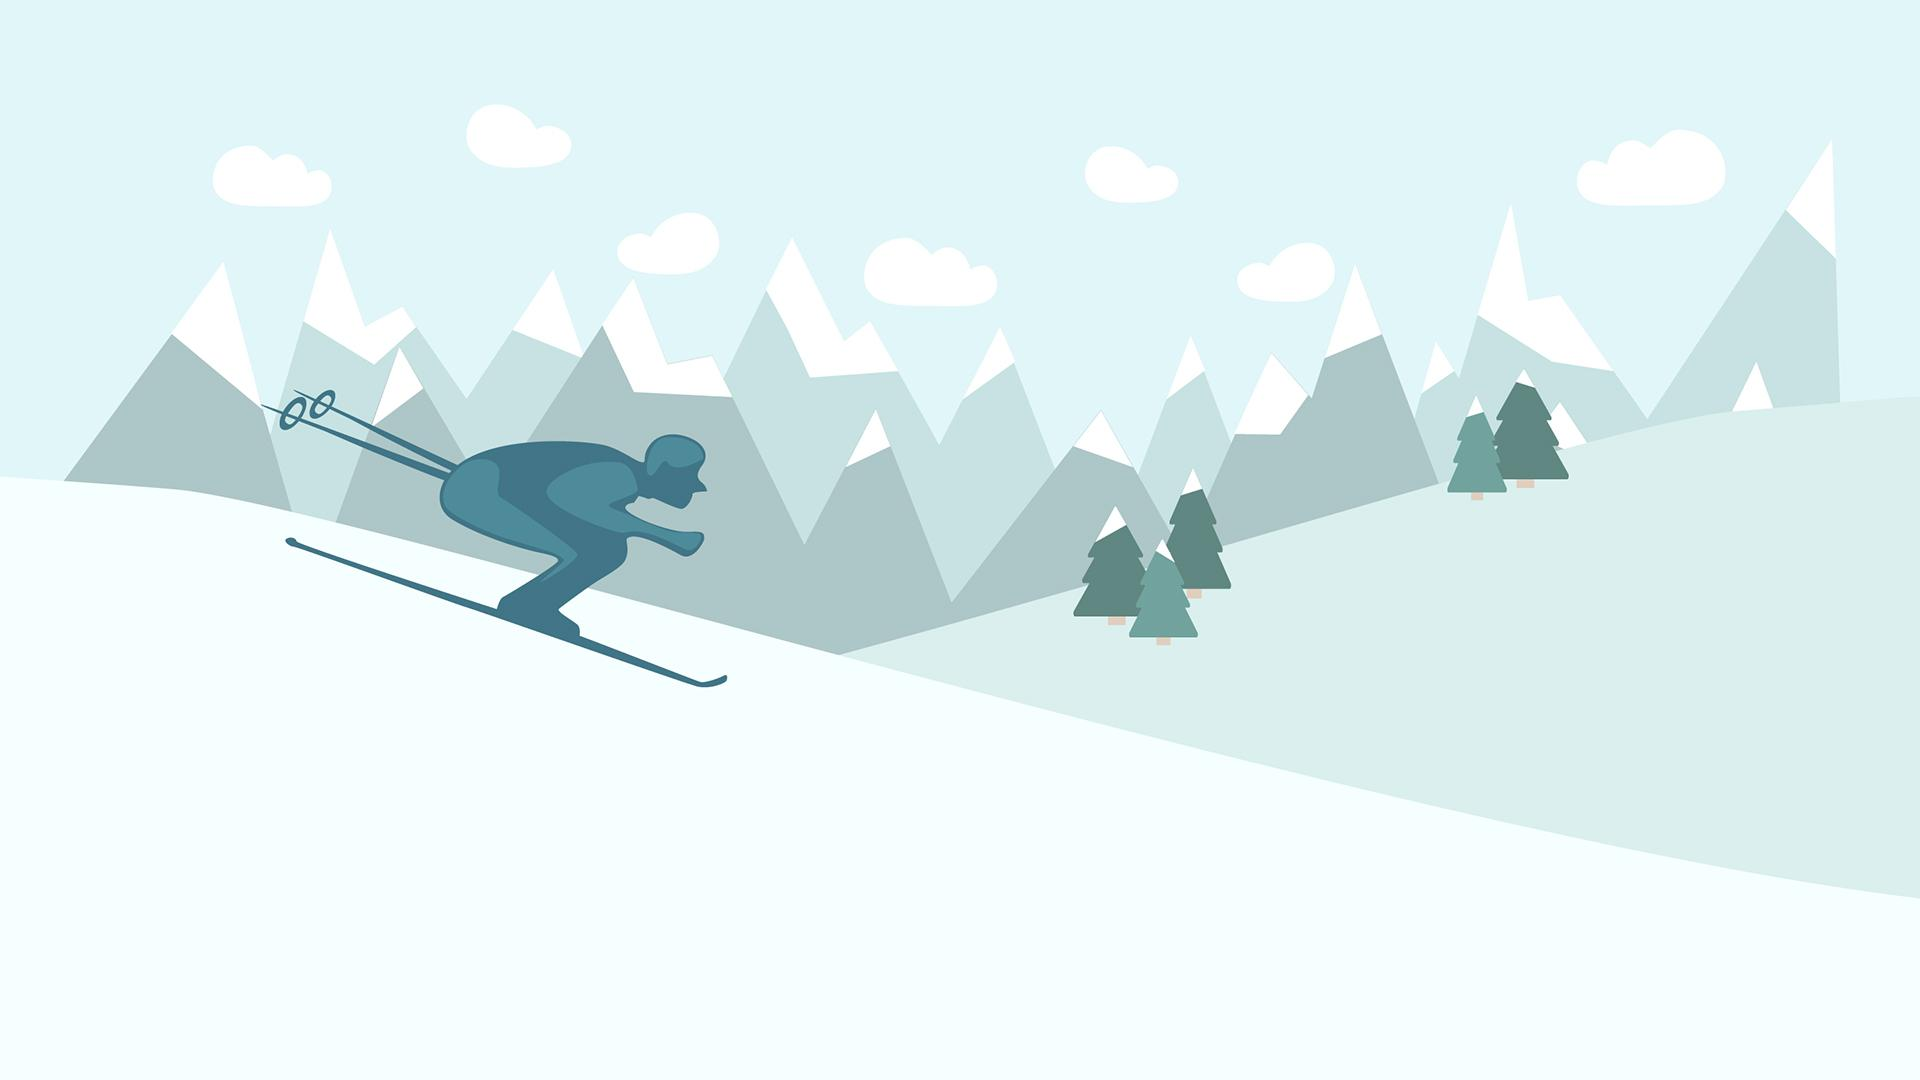 Let's go skiing! - image 1 - student project